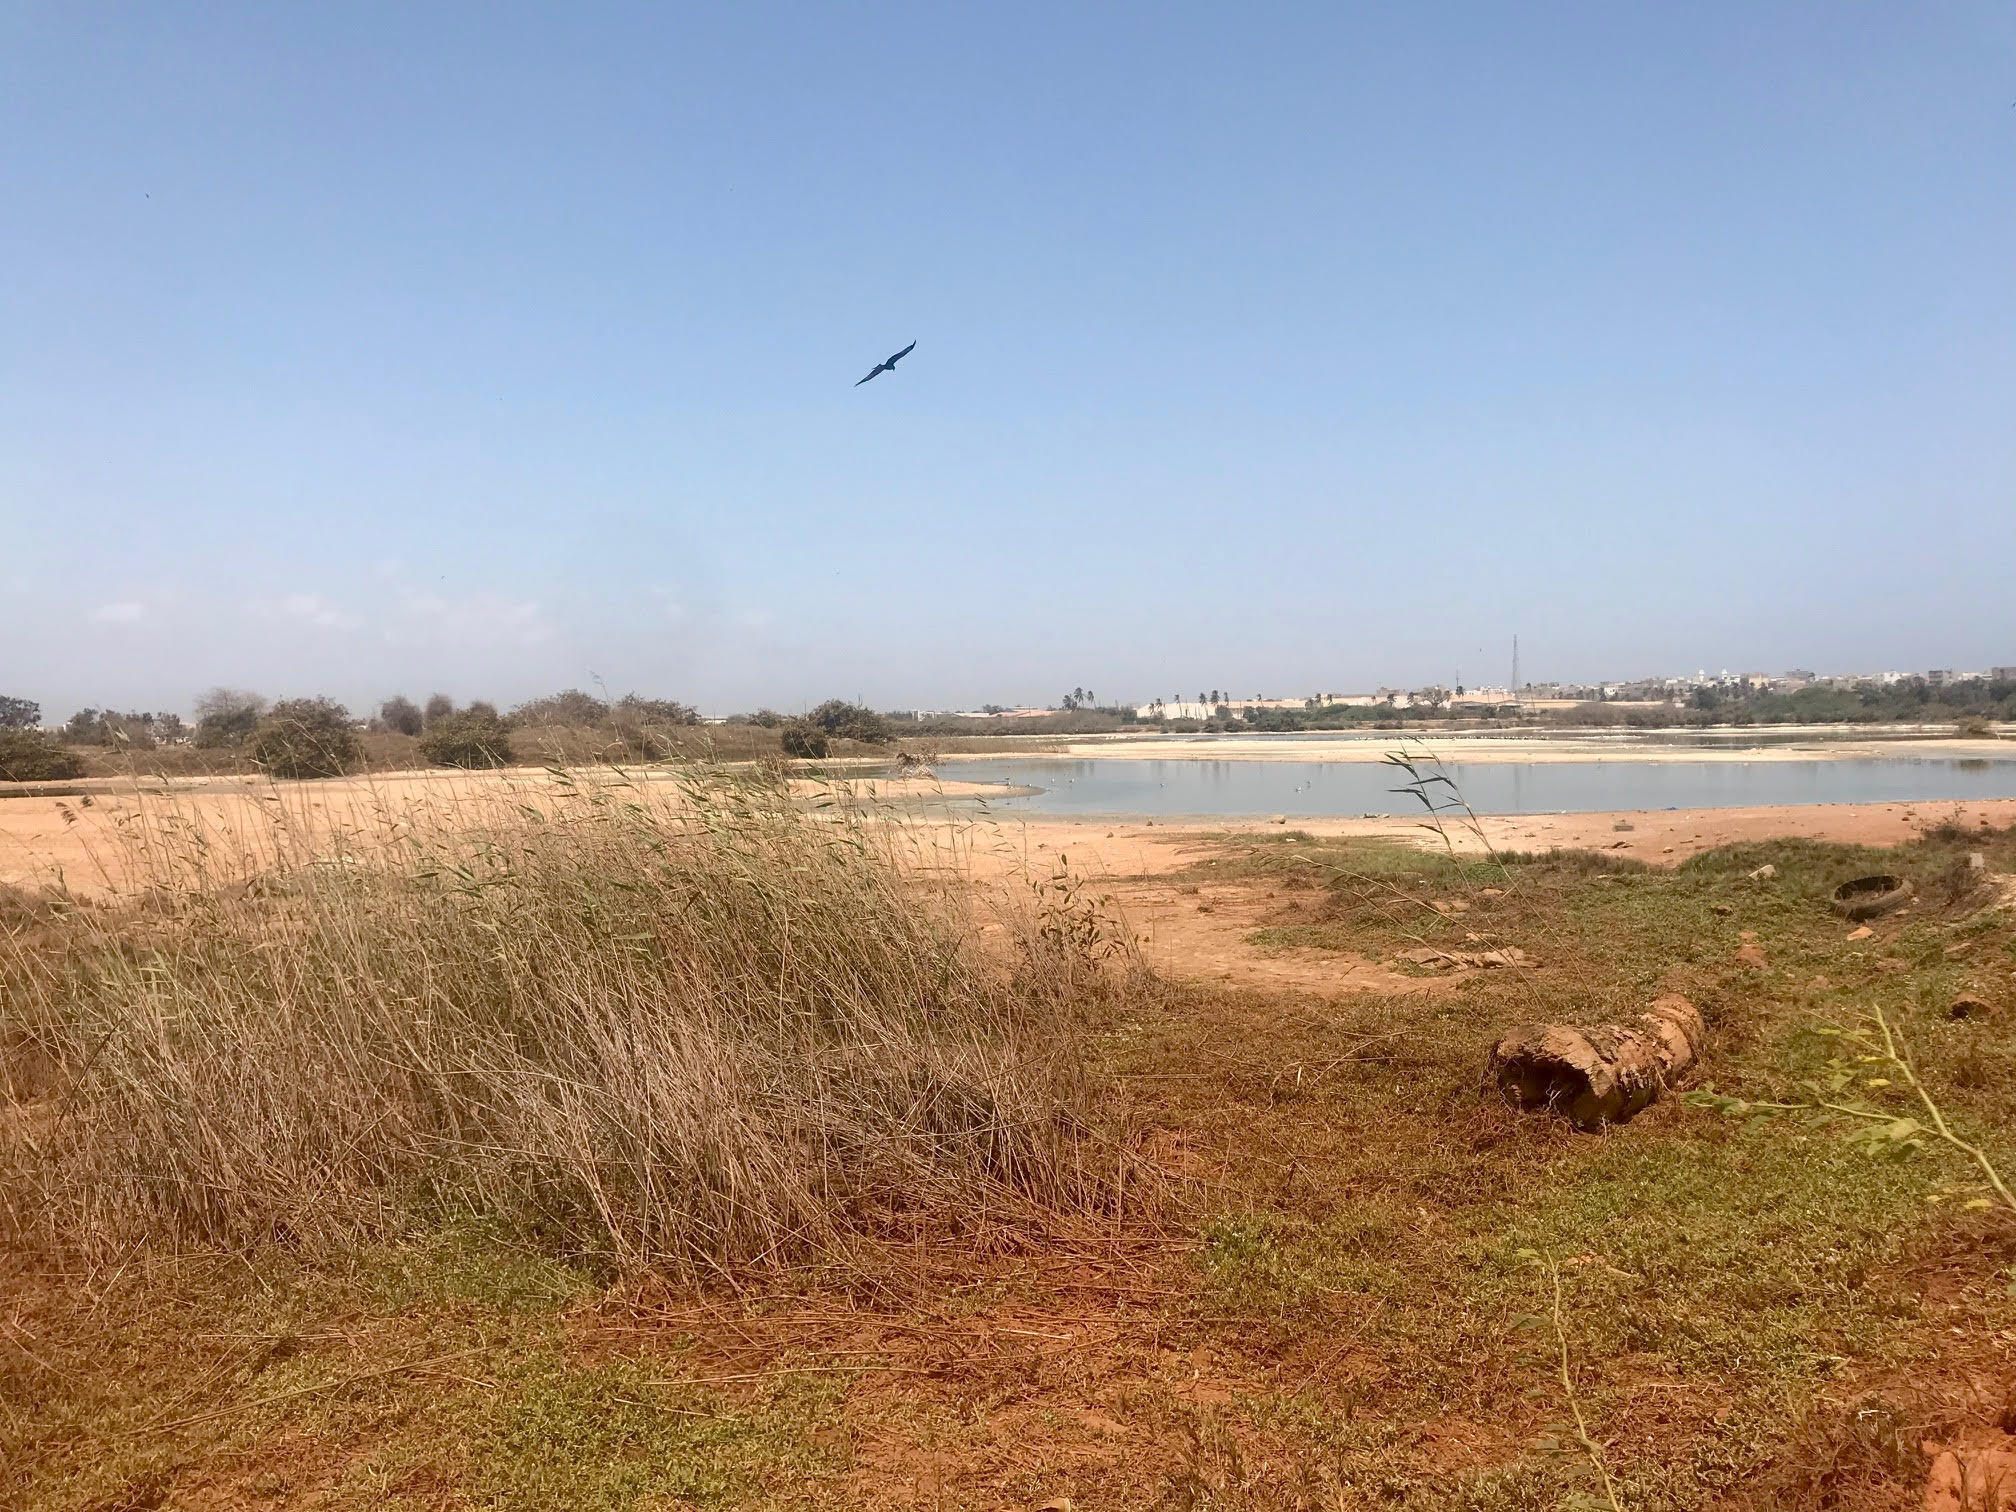 A degraded wetlands at a former golf course near Dakar was recently granted protected status as an urban nature reserve where more than 230 bird species stop by every year.